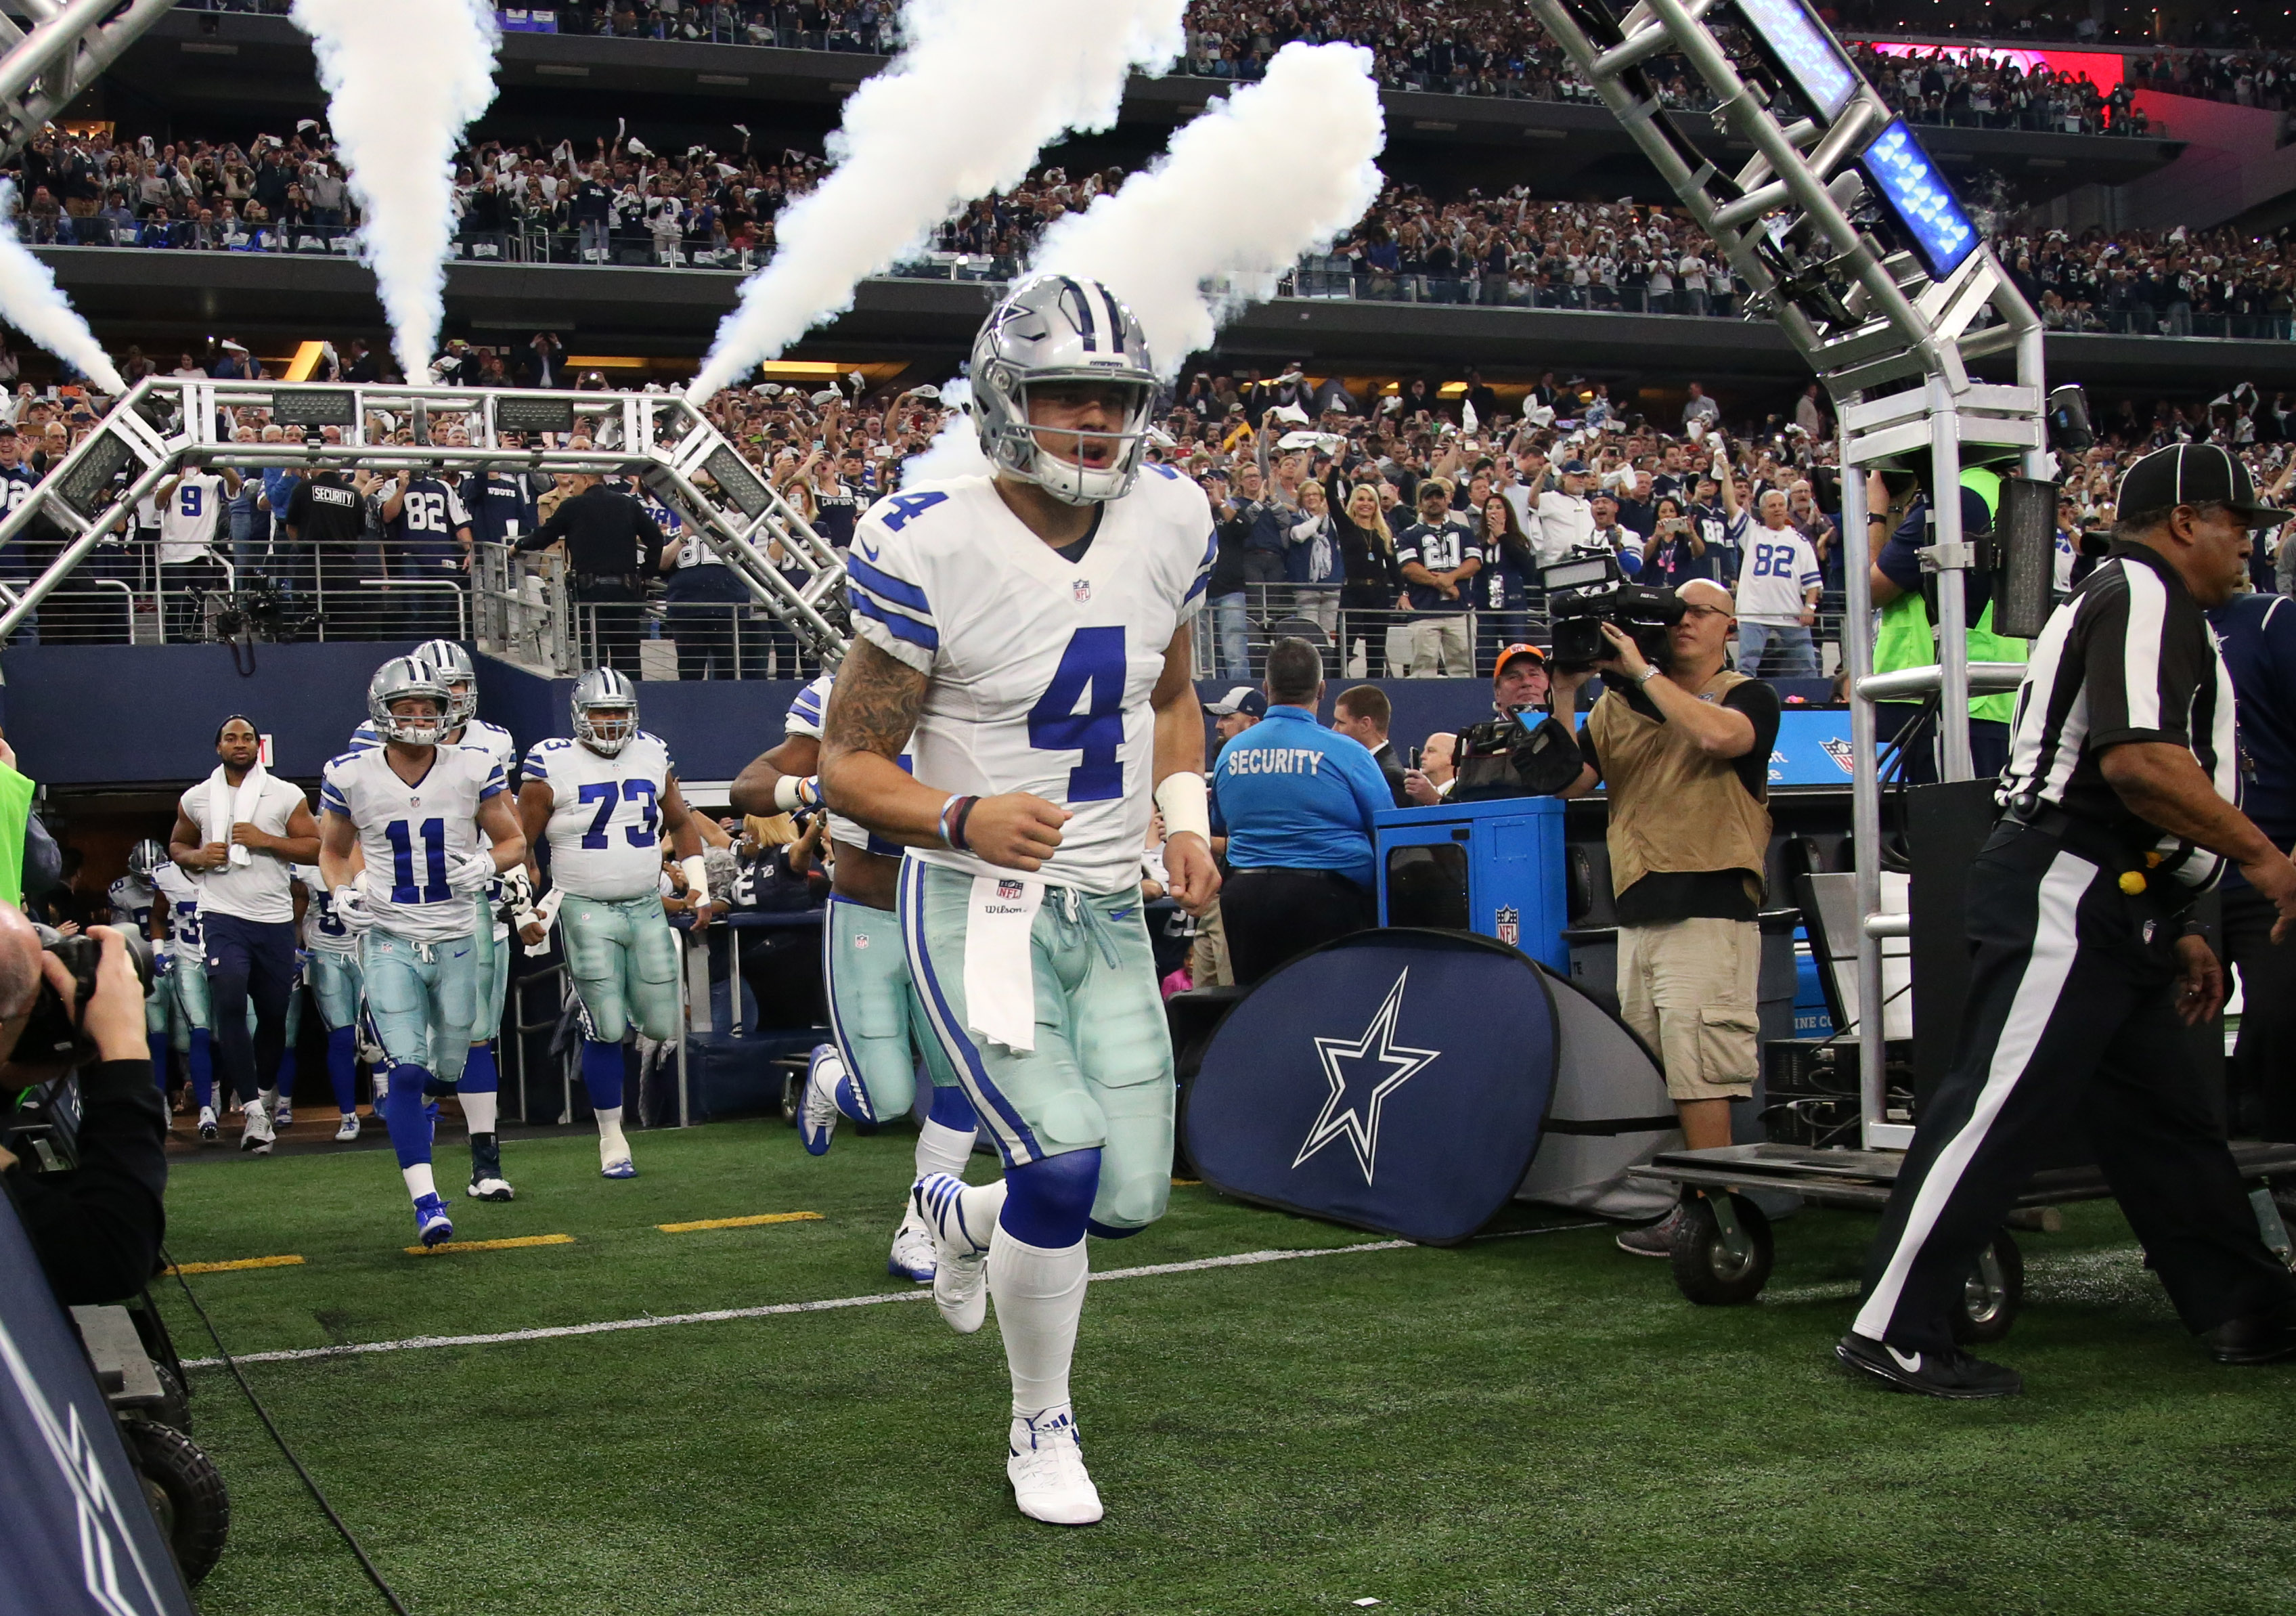 9812048-nfl-nfc-divisional-green-bay-packers-at-dallas-cowboys